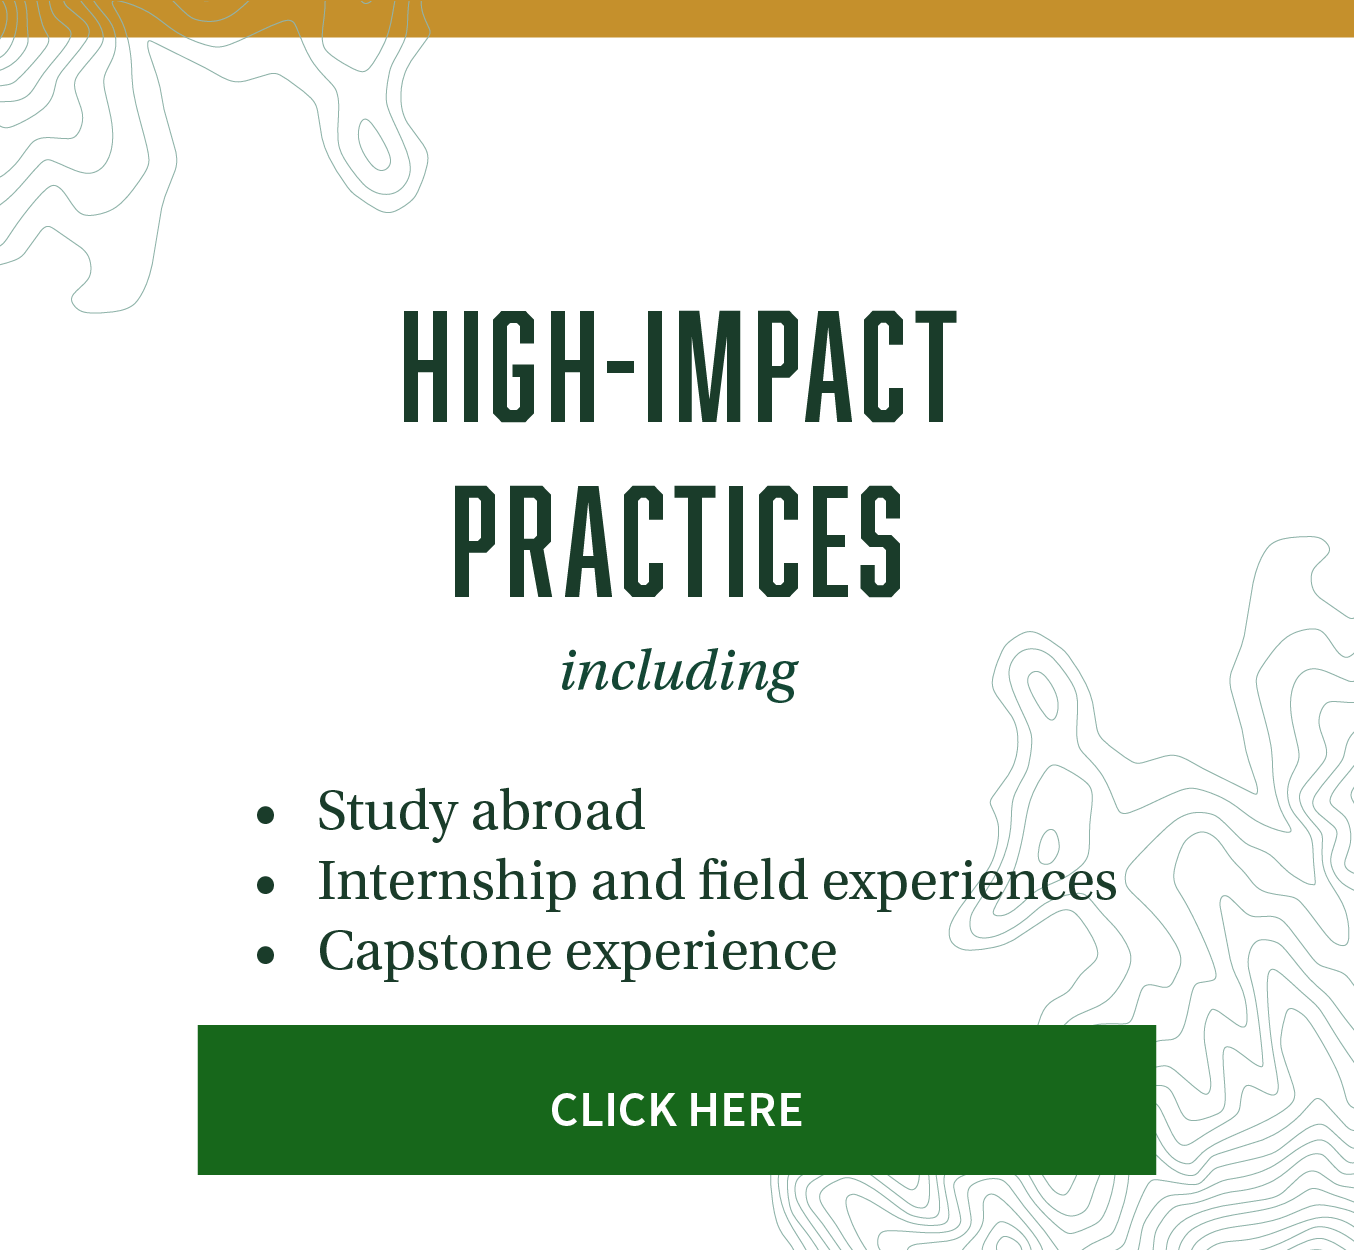 High-impact practices - including study abroad, internship and field experiences, capstone experience. Click here